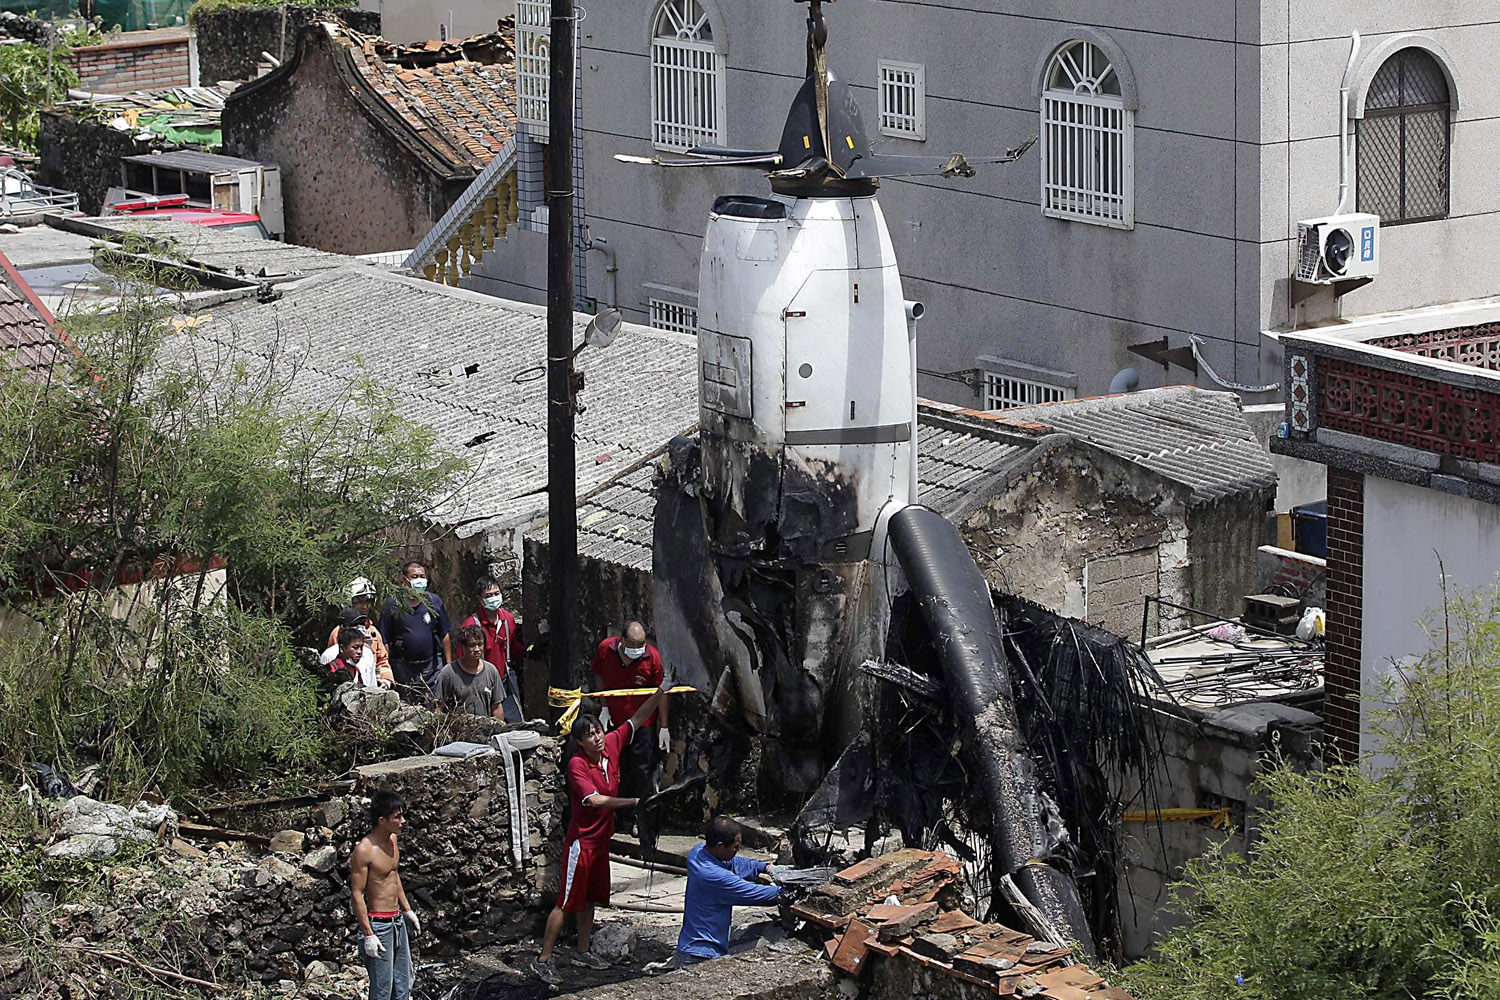 Jul. 25, 2014. Workers remove the wreckage of a TransAsia Airways turboprop plane that crashed on Taiwan's offshore island Penghu.